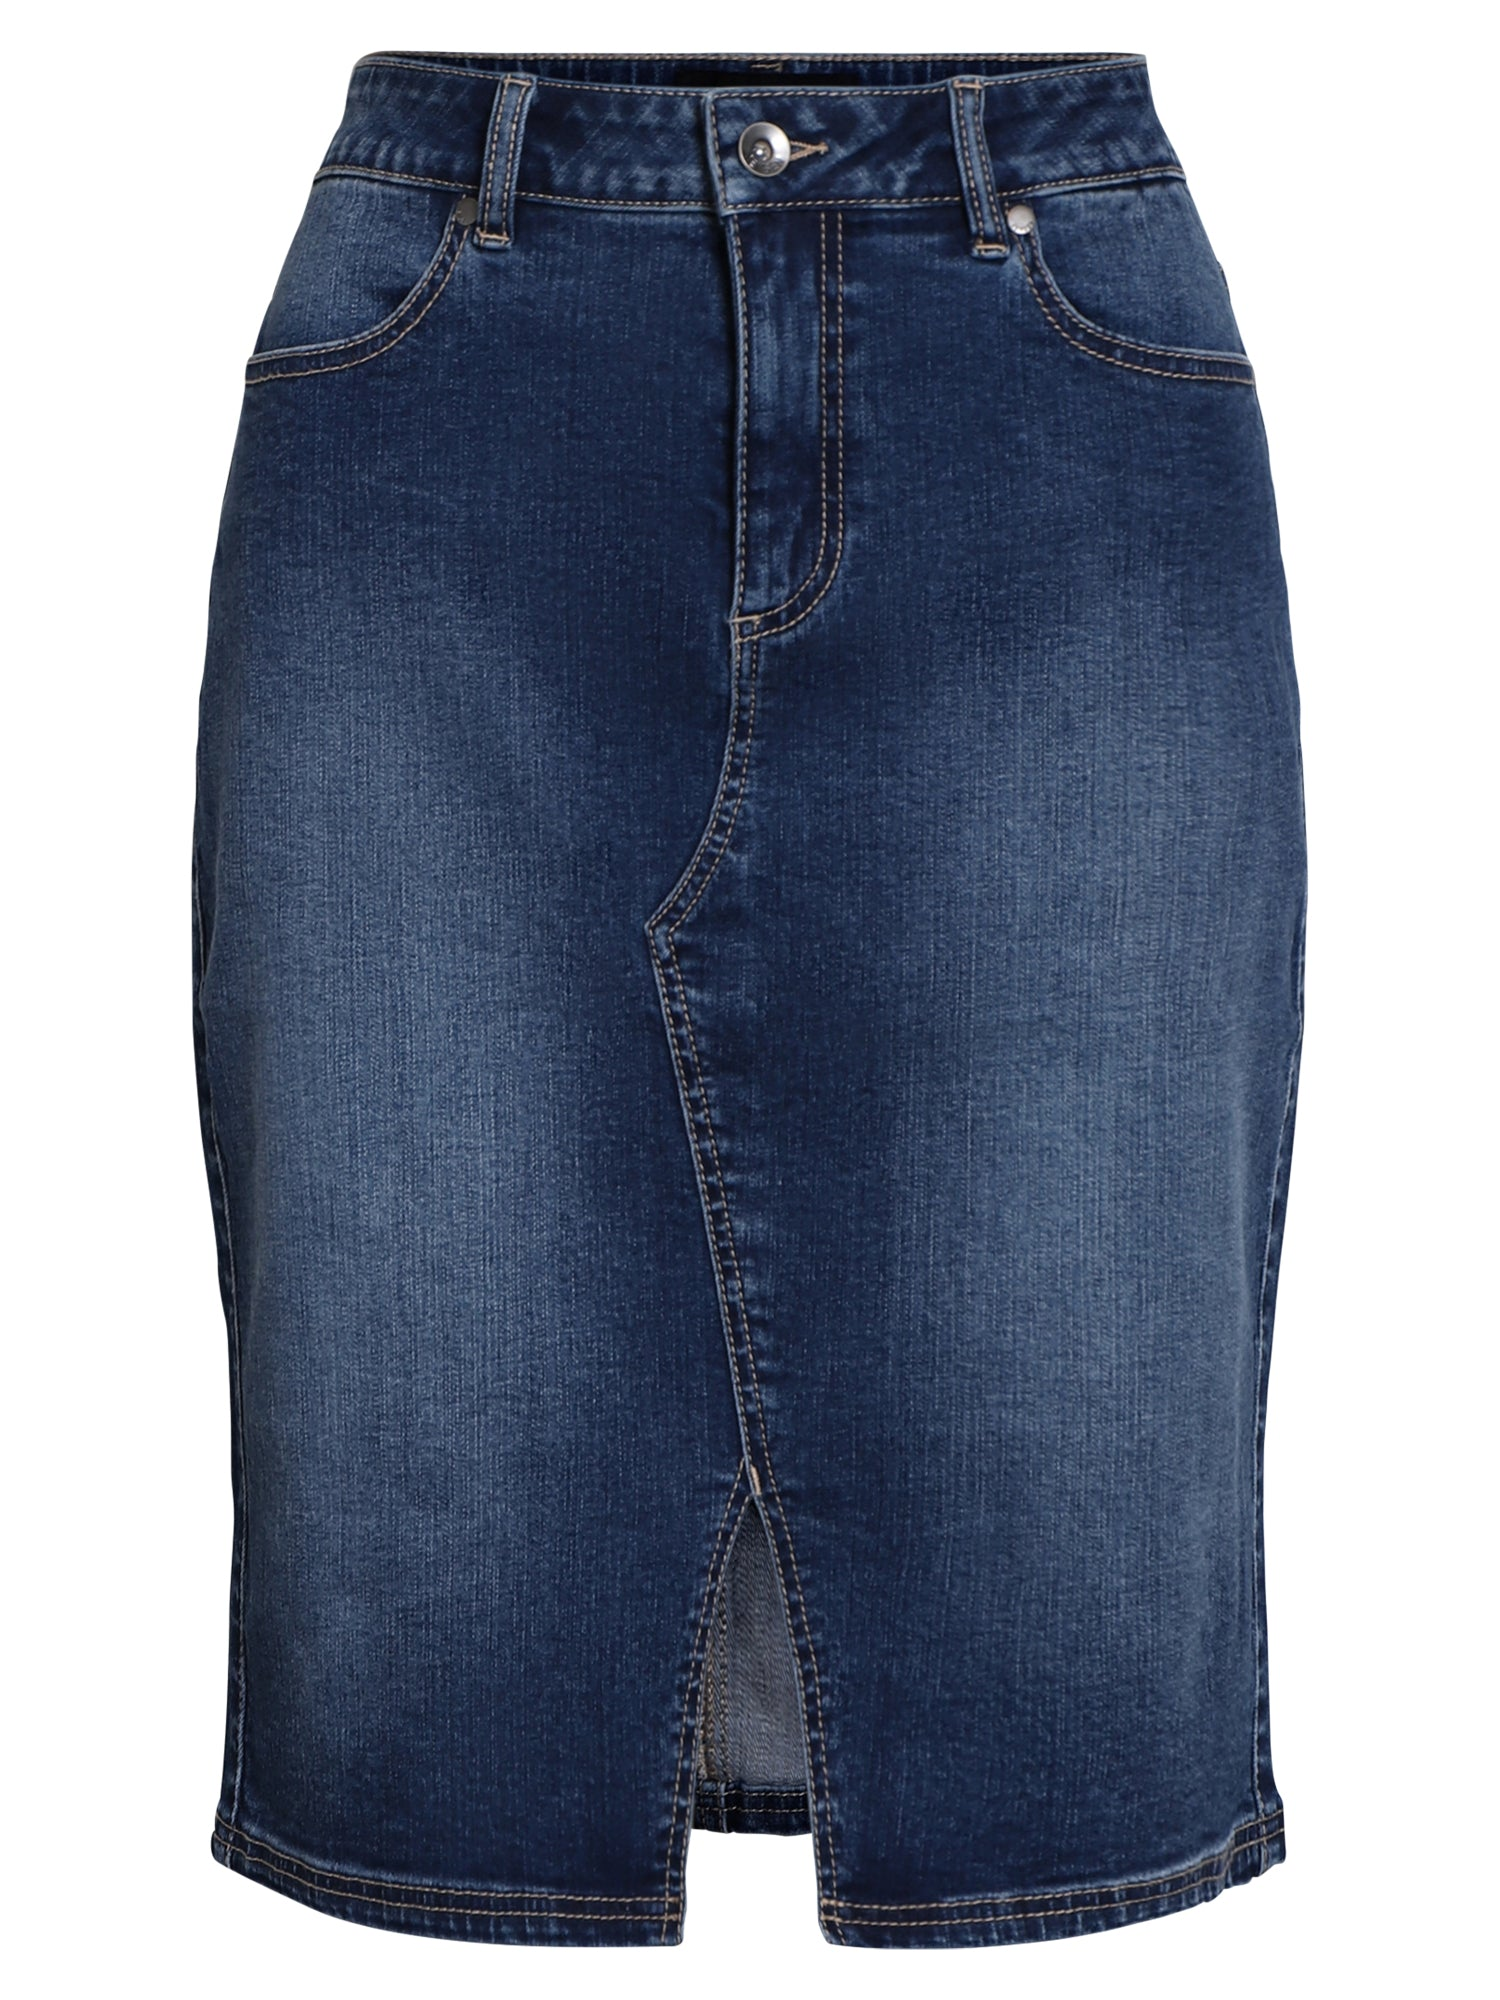 Image of   Denim nederdel - denim w. blast